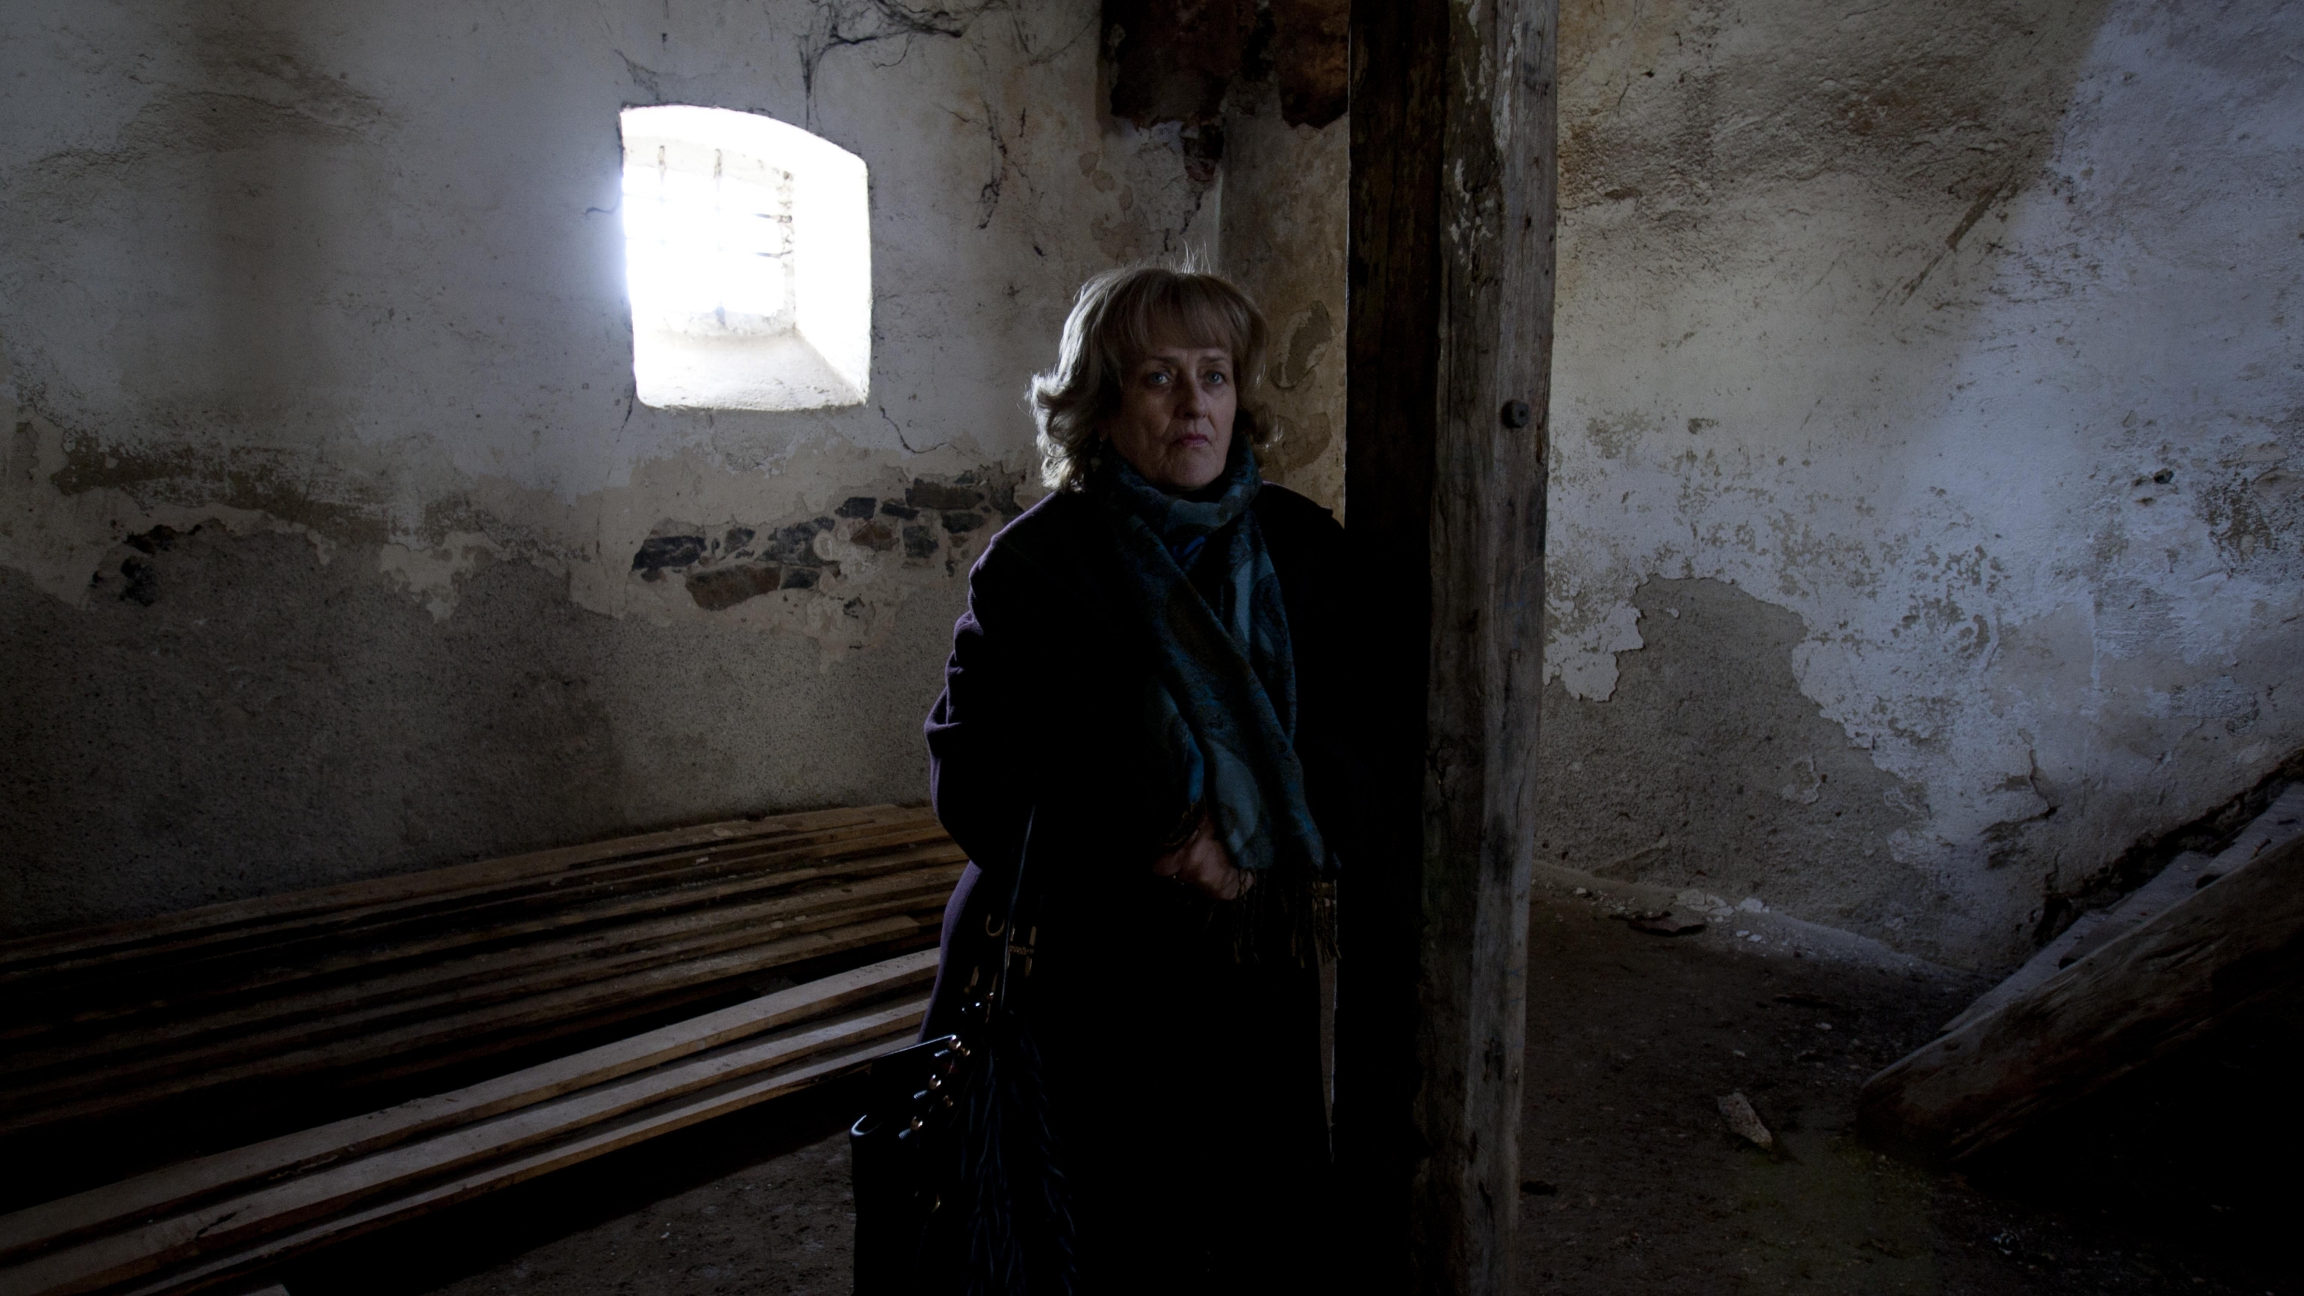 A woman stands in an abandoned building with light coming through the window.